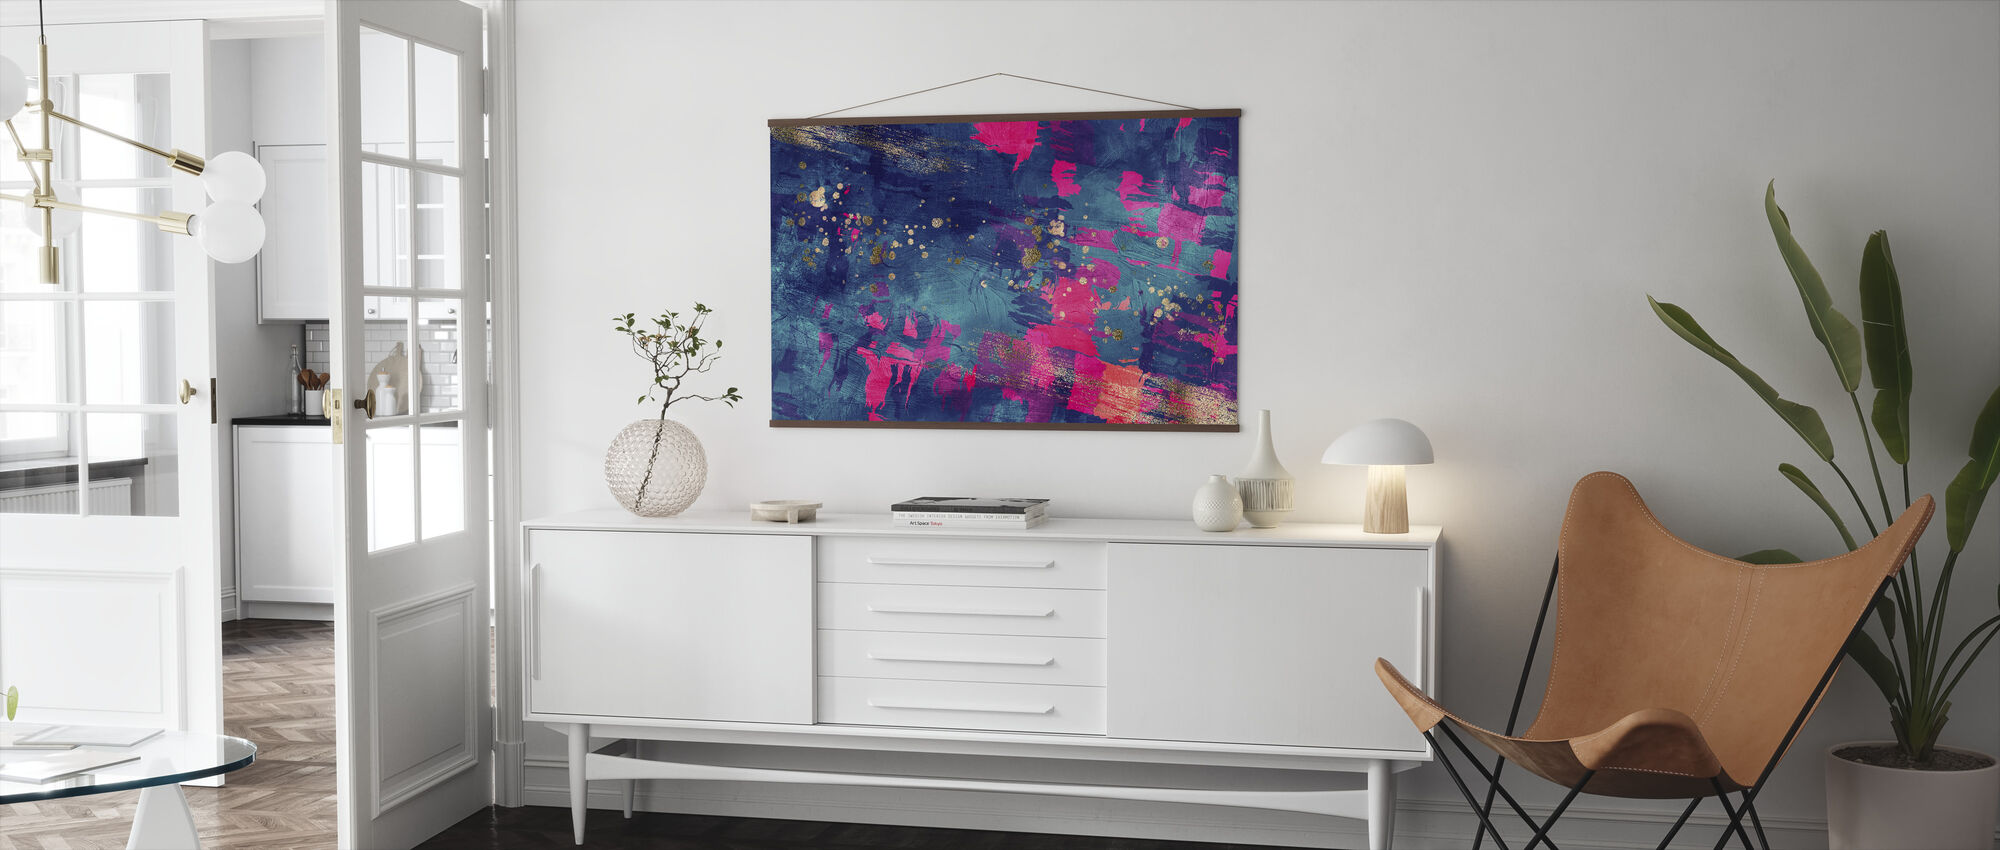 Abstract Oil Painting - Poster - Living Room